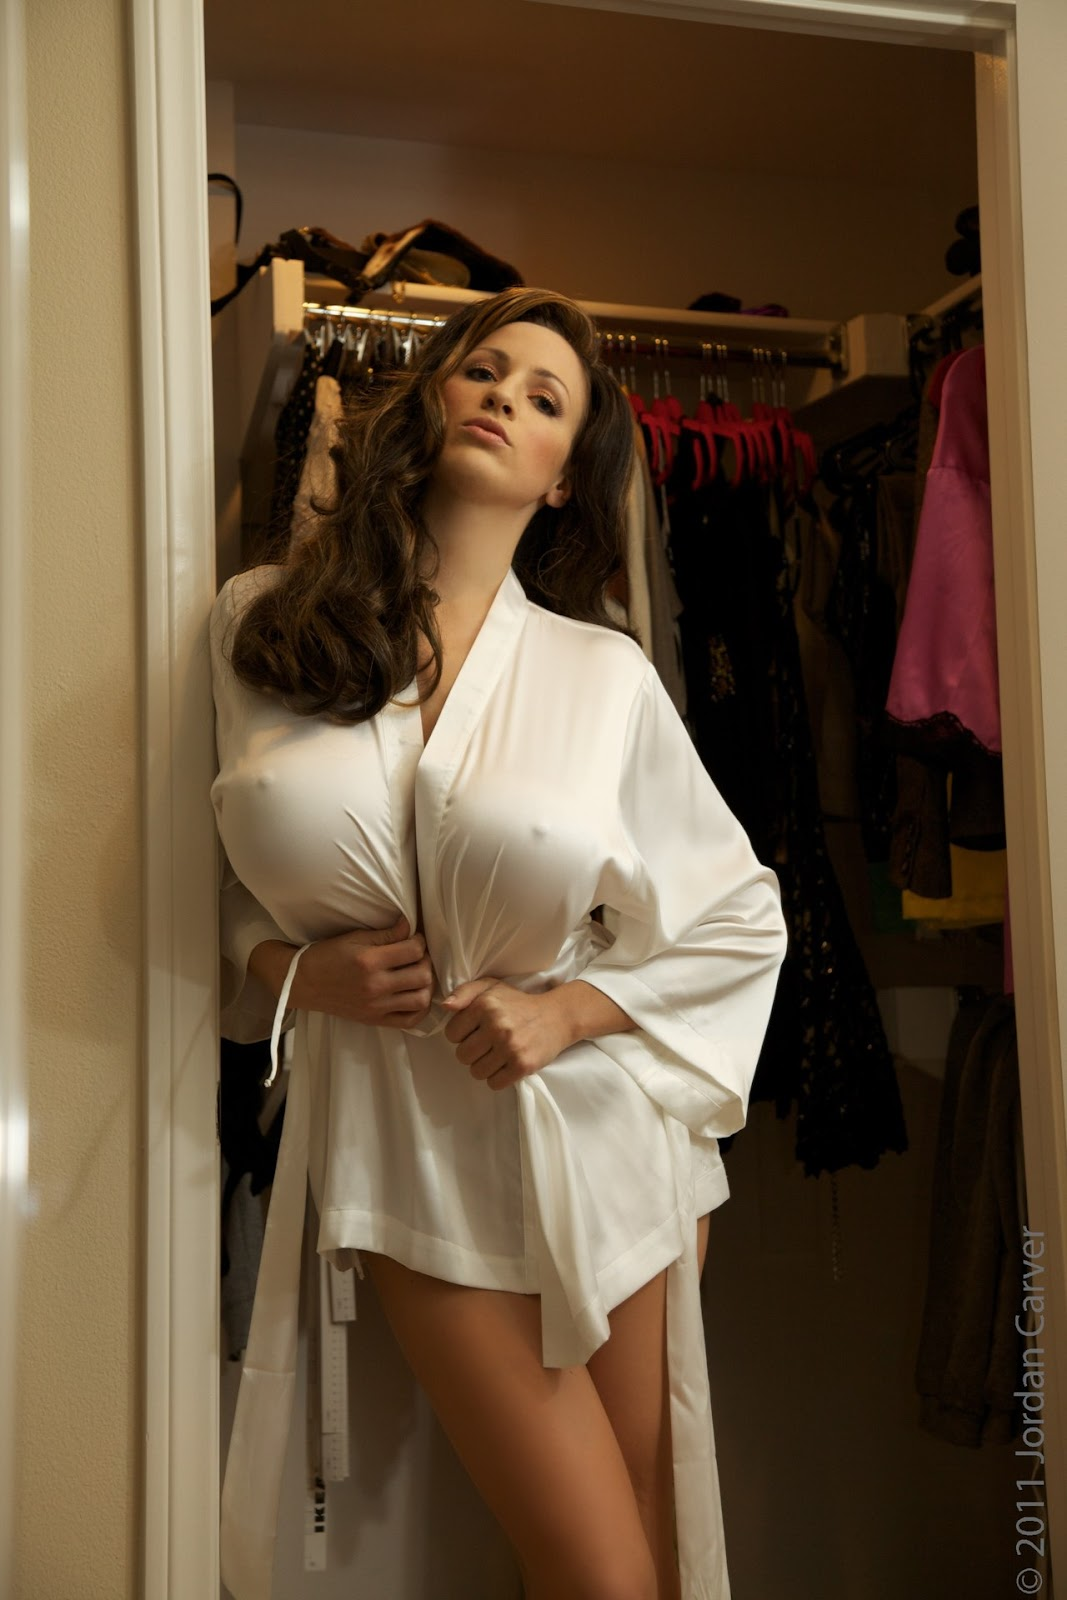 Jordan carver wardrobe for Hot blog photos